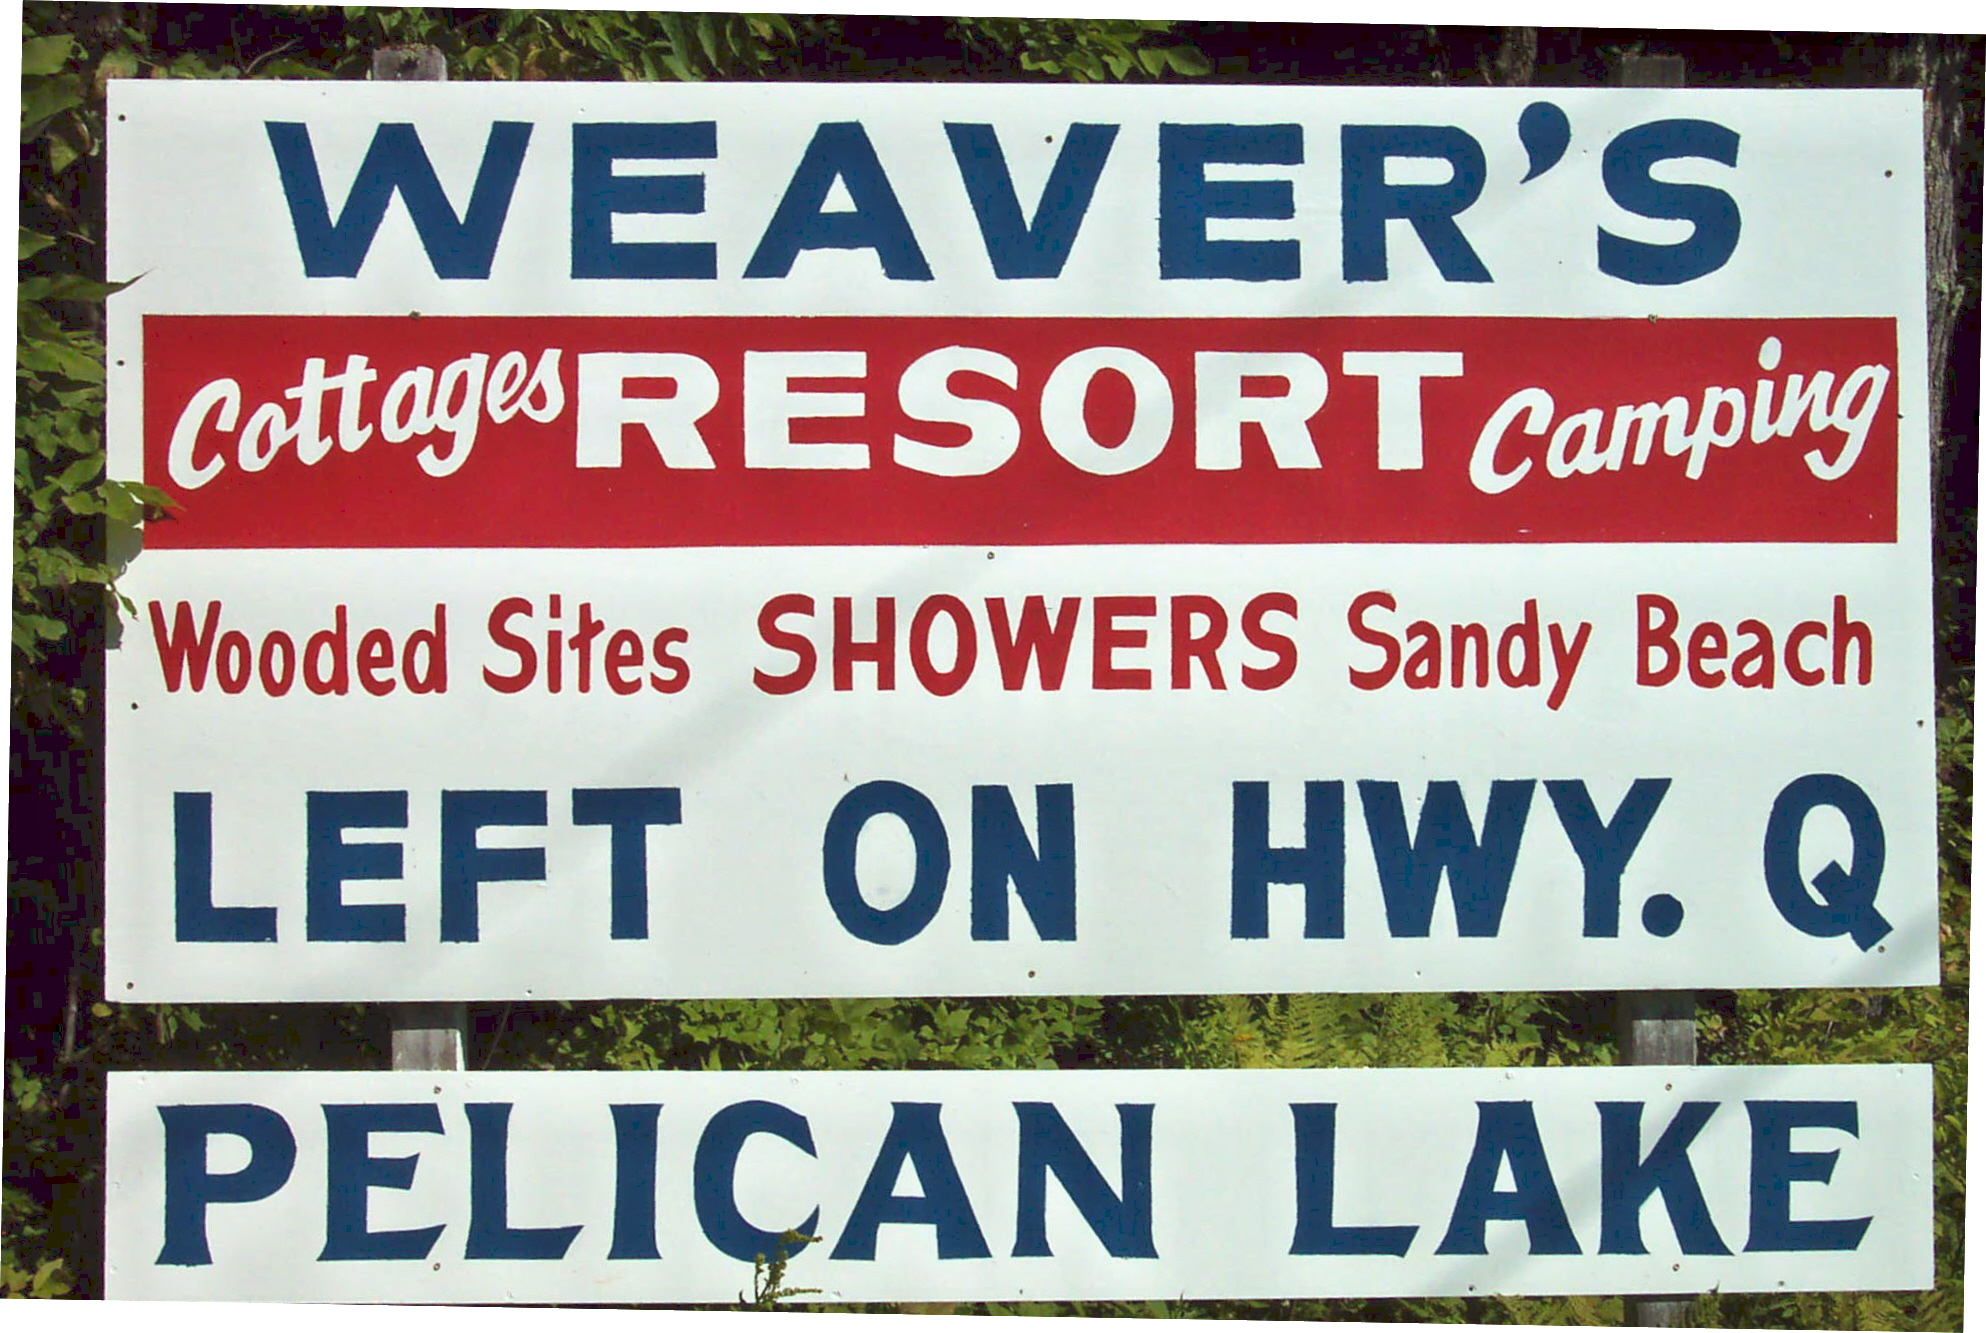 Weaver's Resort & Campground, Pelican Lake WI